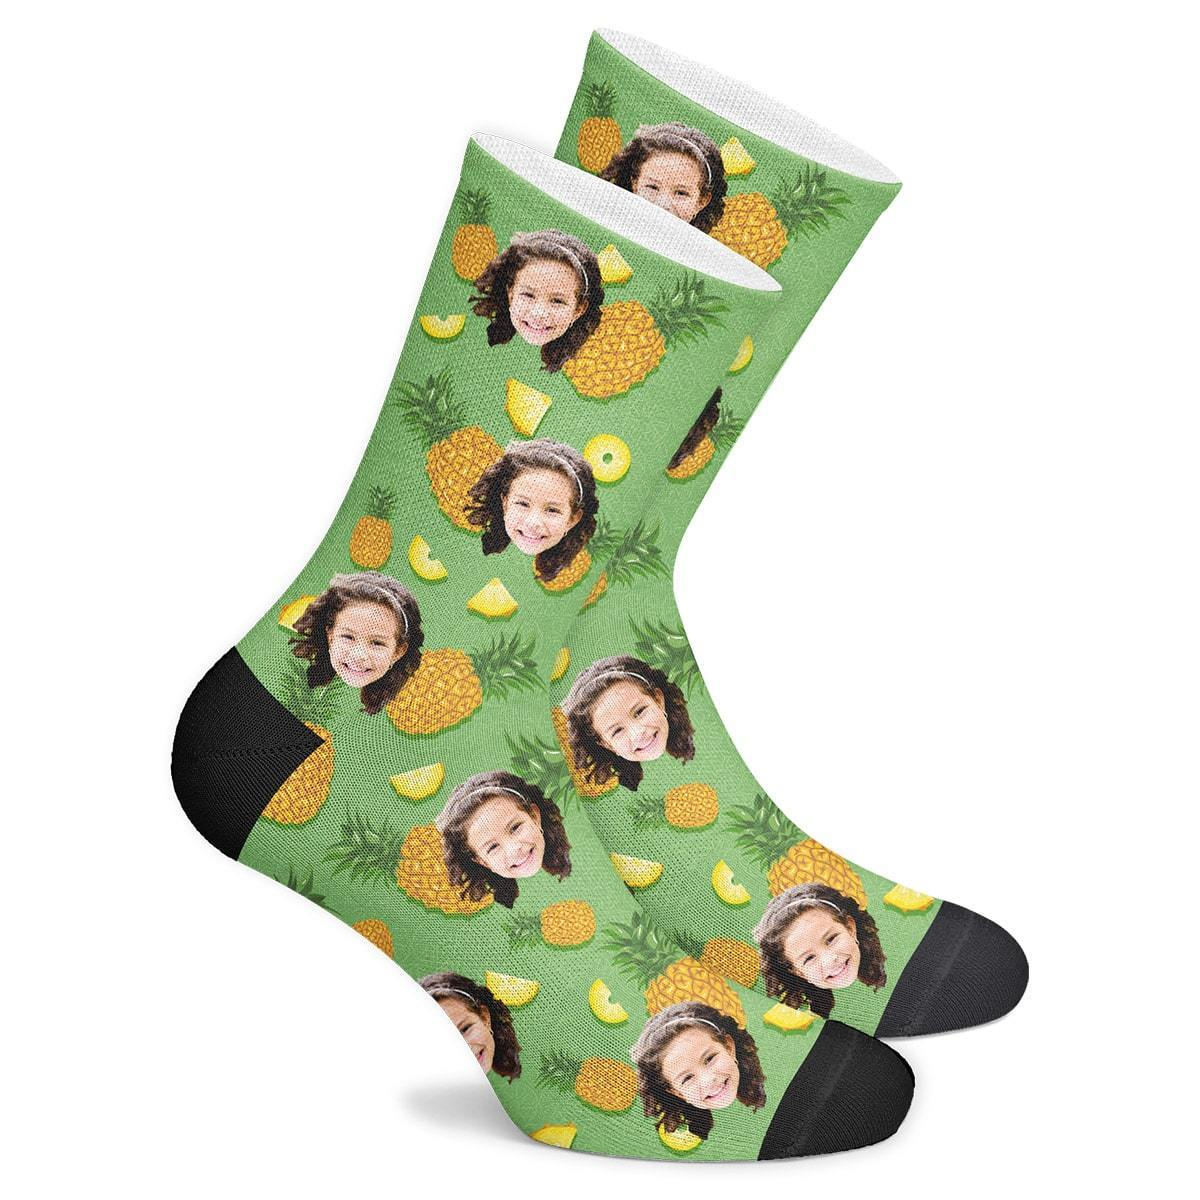 Custom Pineapple Socks - Unisex